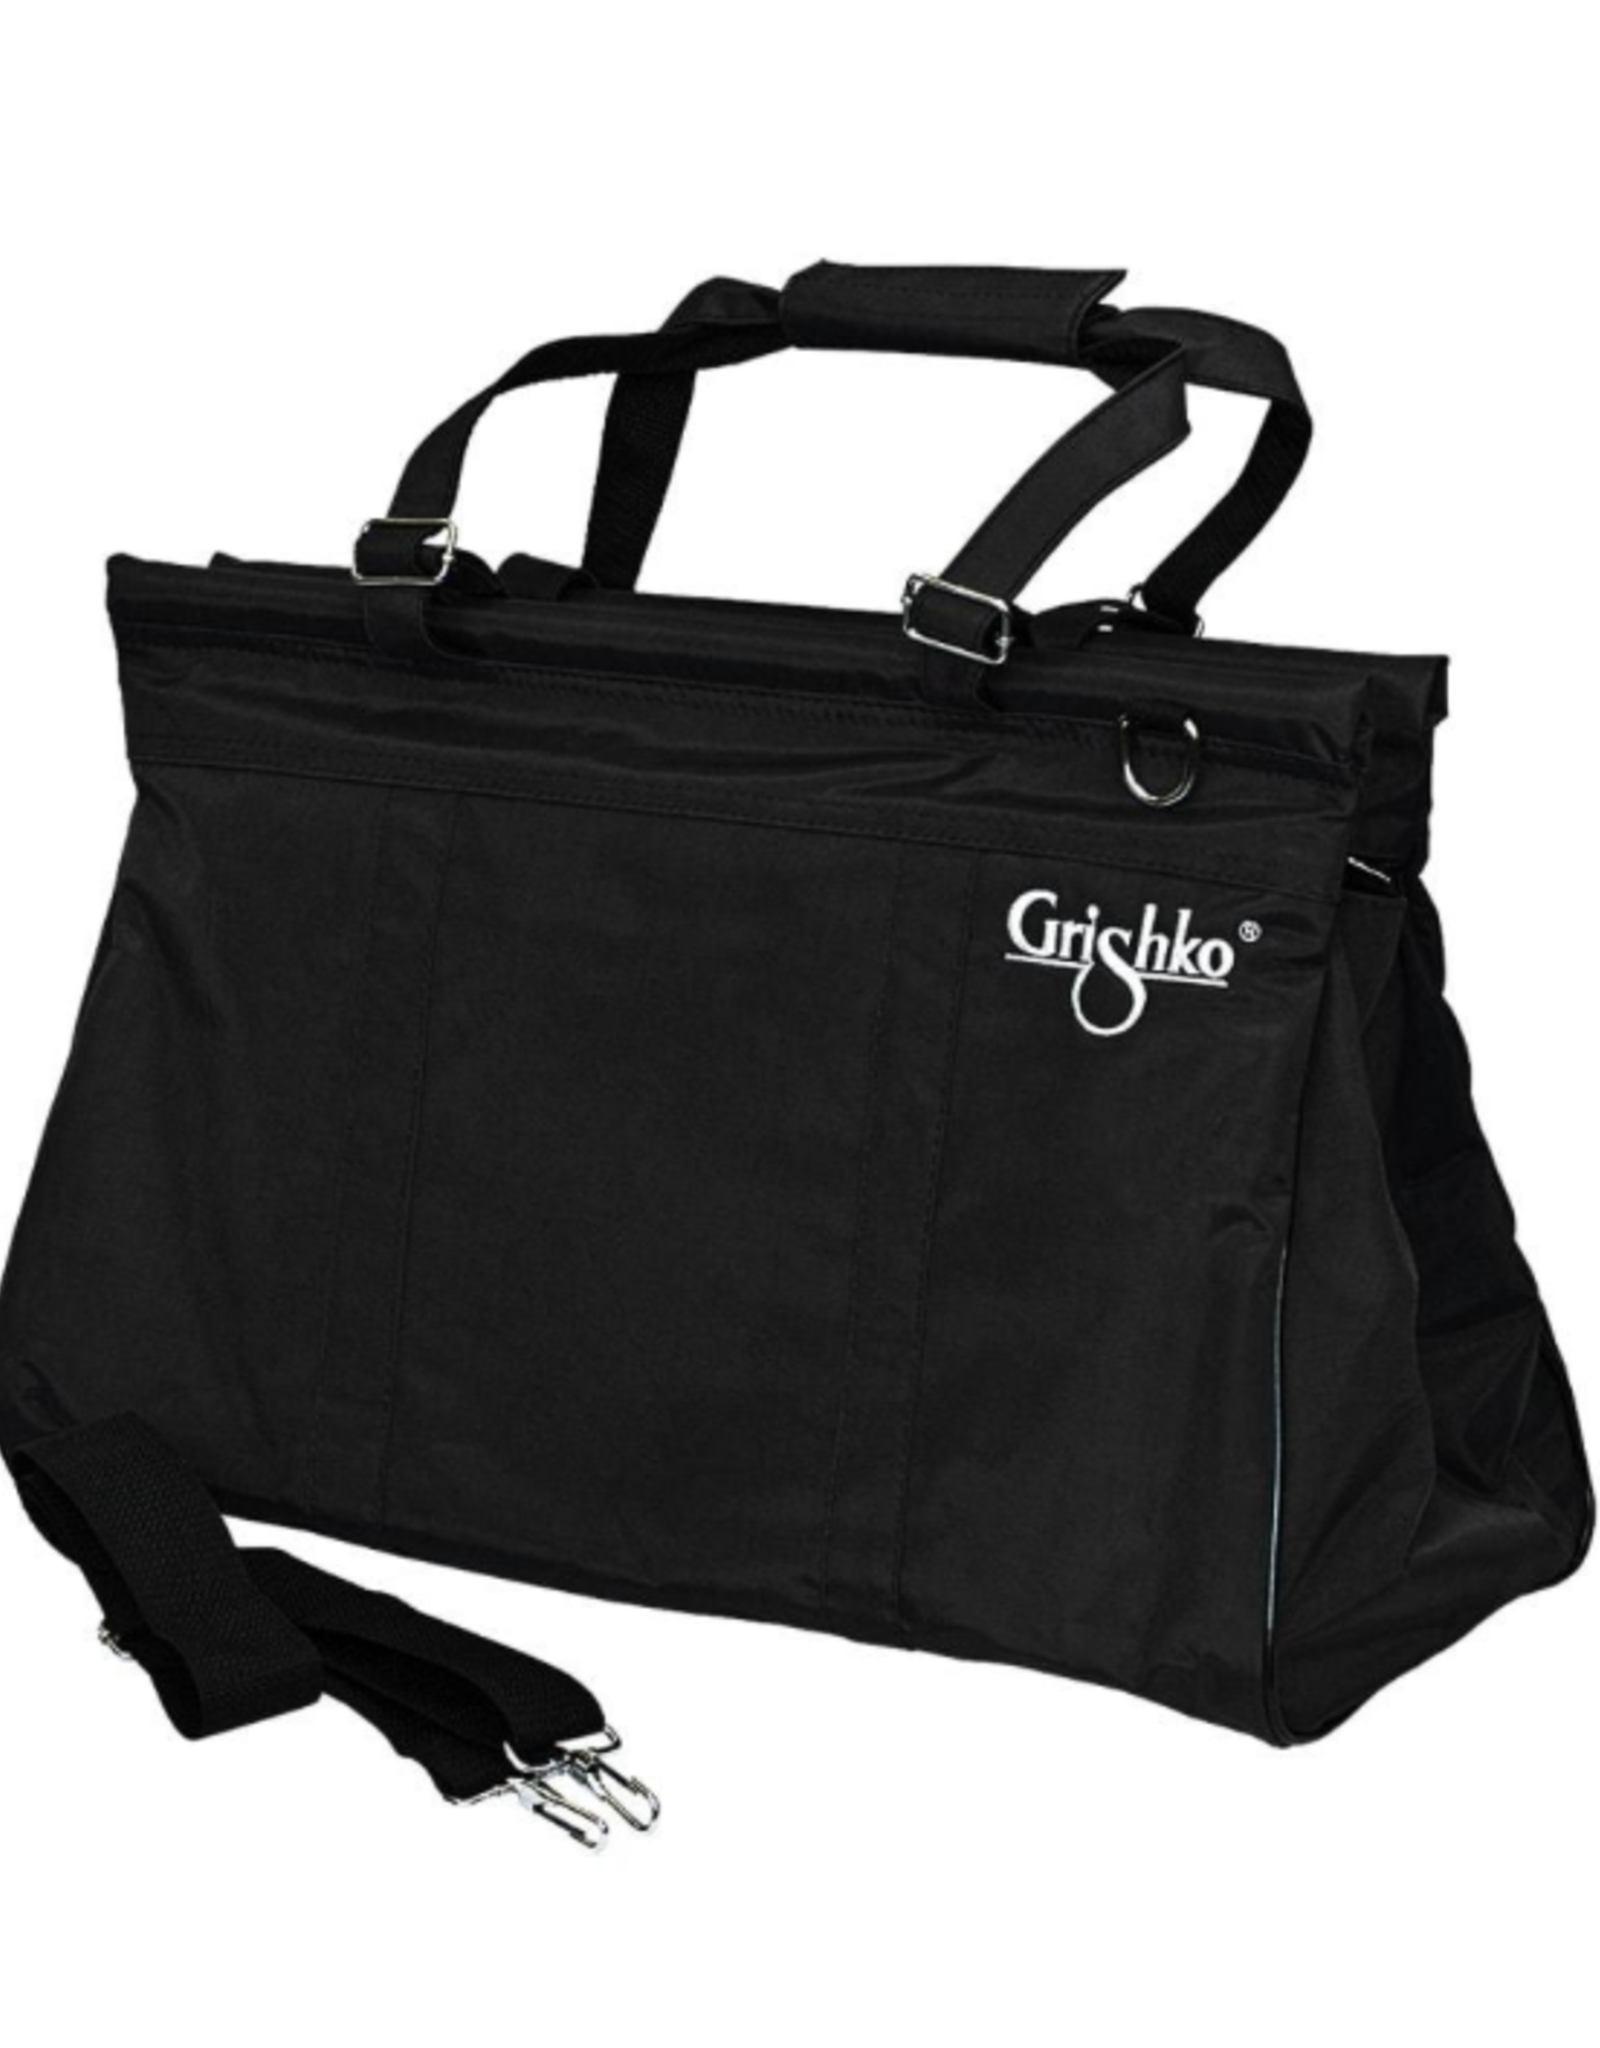 GRISHKO GRAND SAC DE VOYAGE A COMPARTIMENTS (5107)